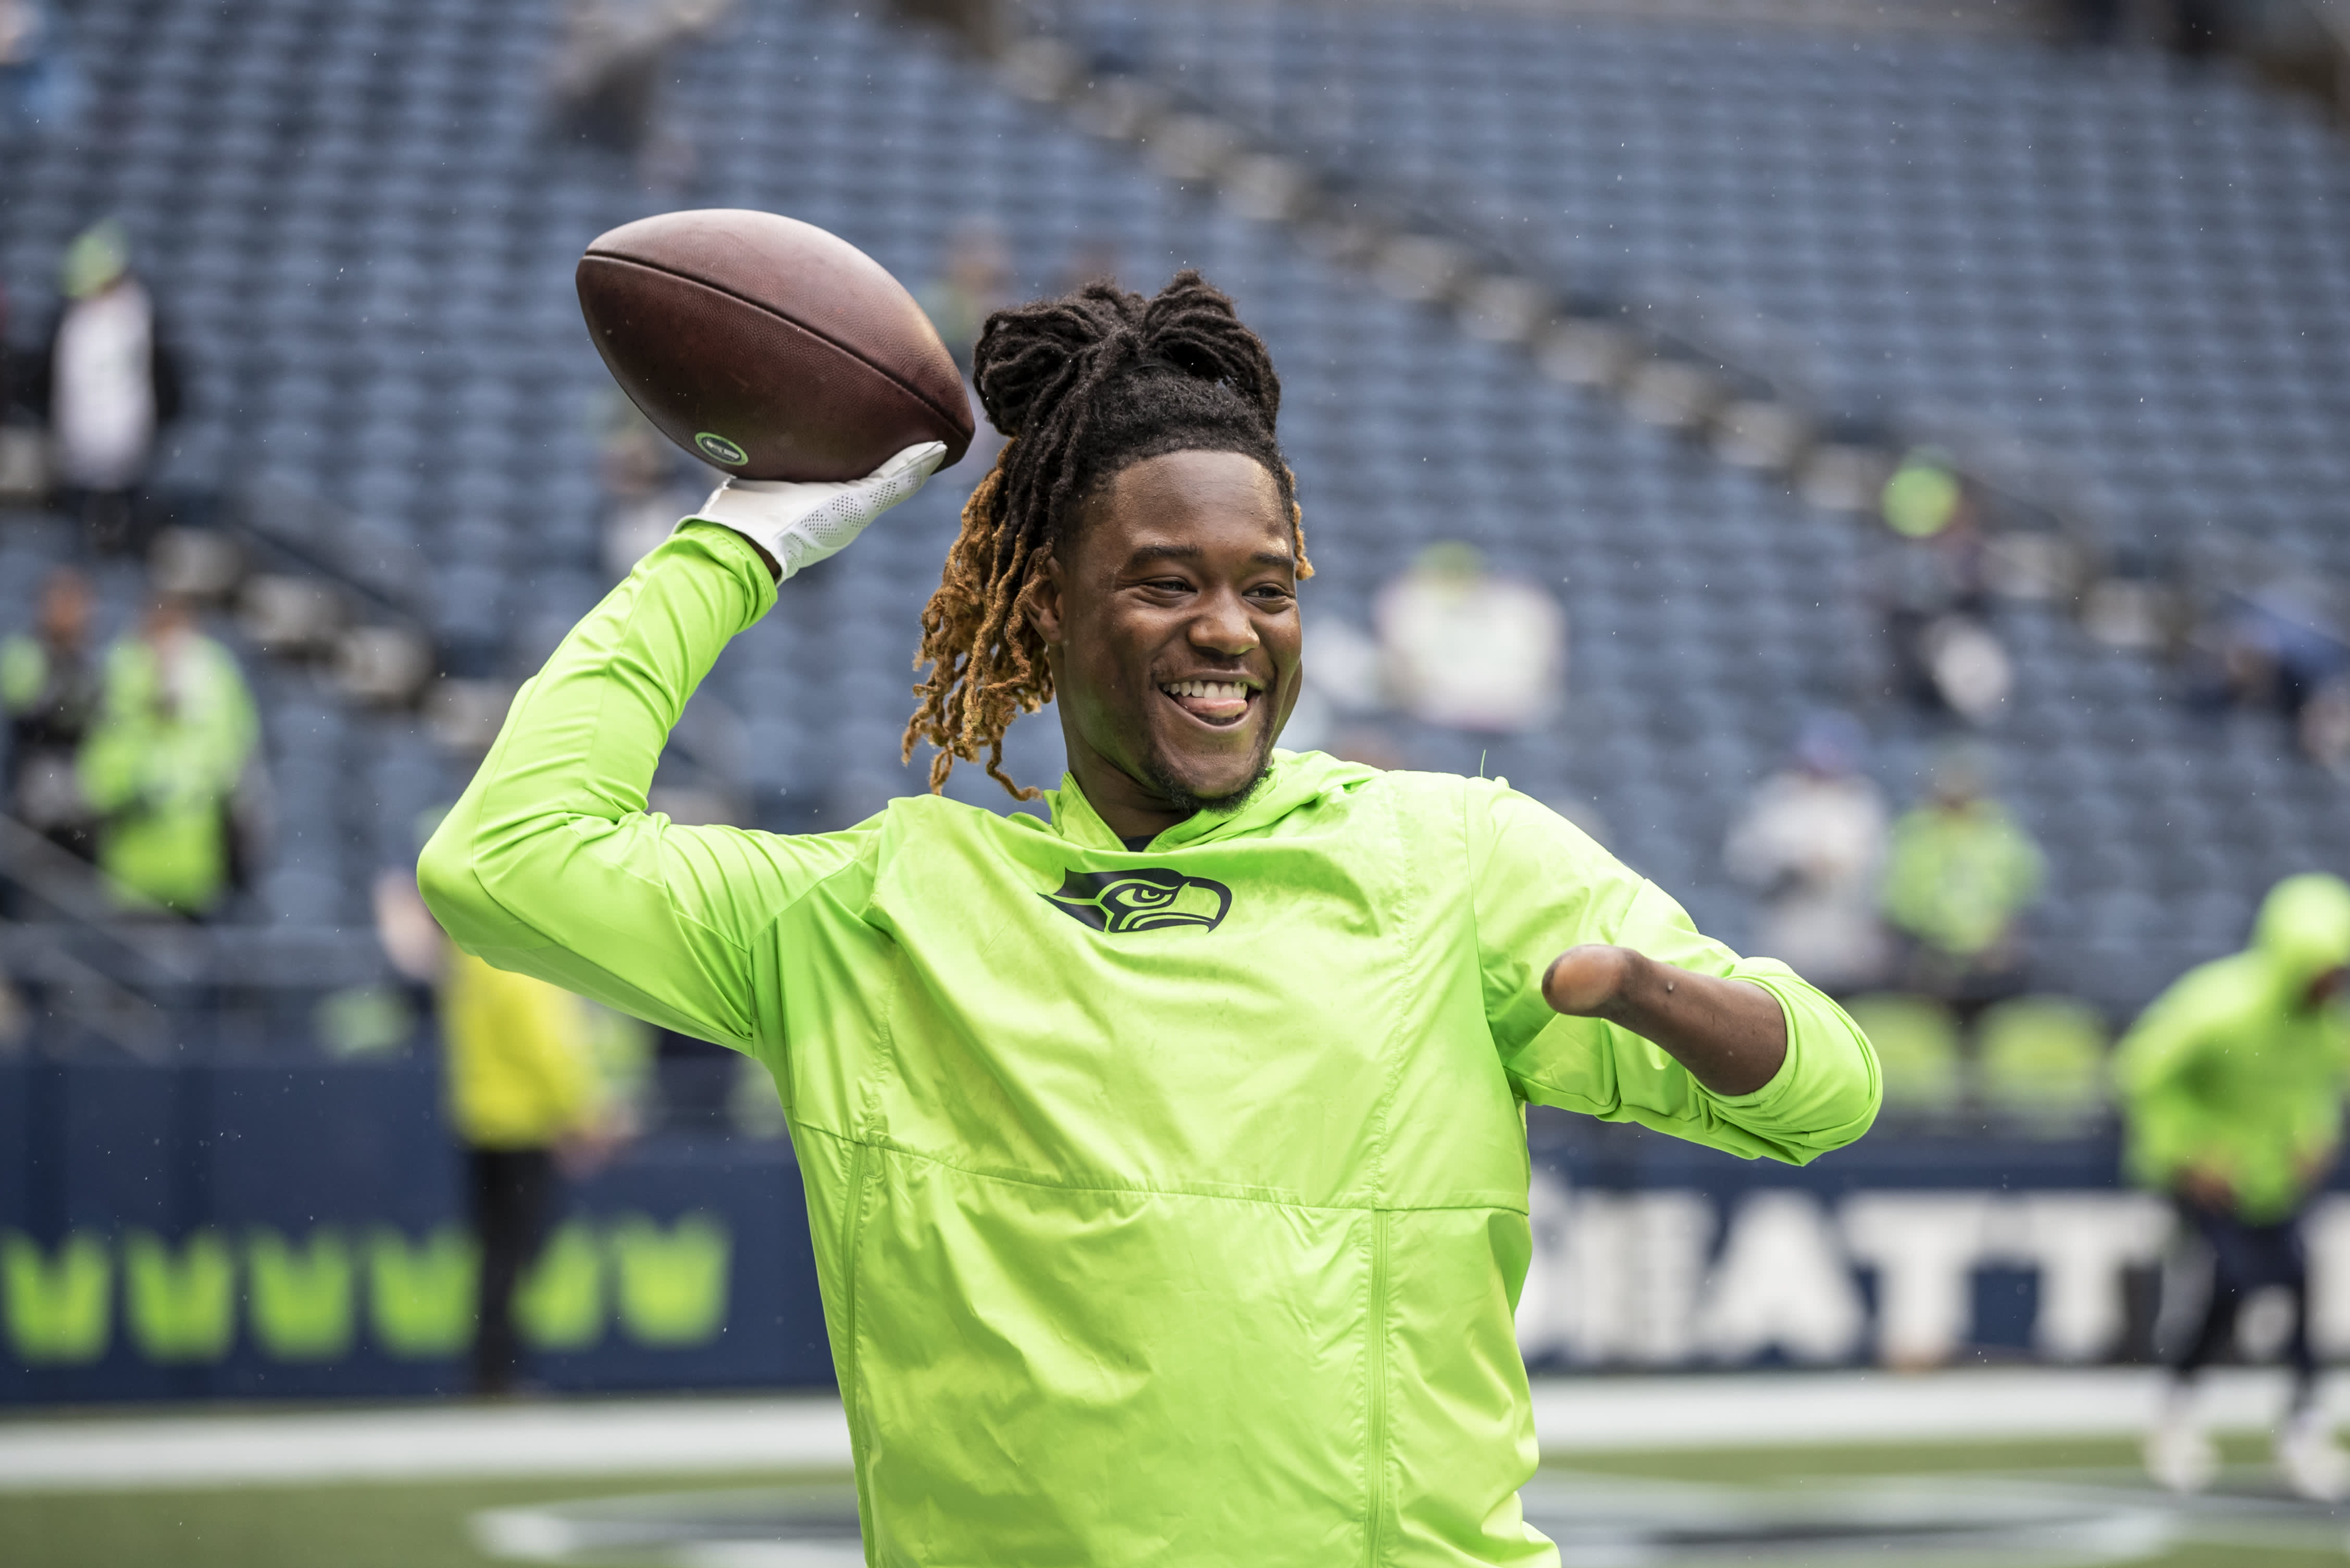 The off-season diet and workout plan that keeps one-handed NFL star Shaquem Griffin in shape